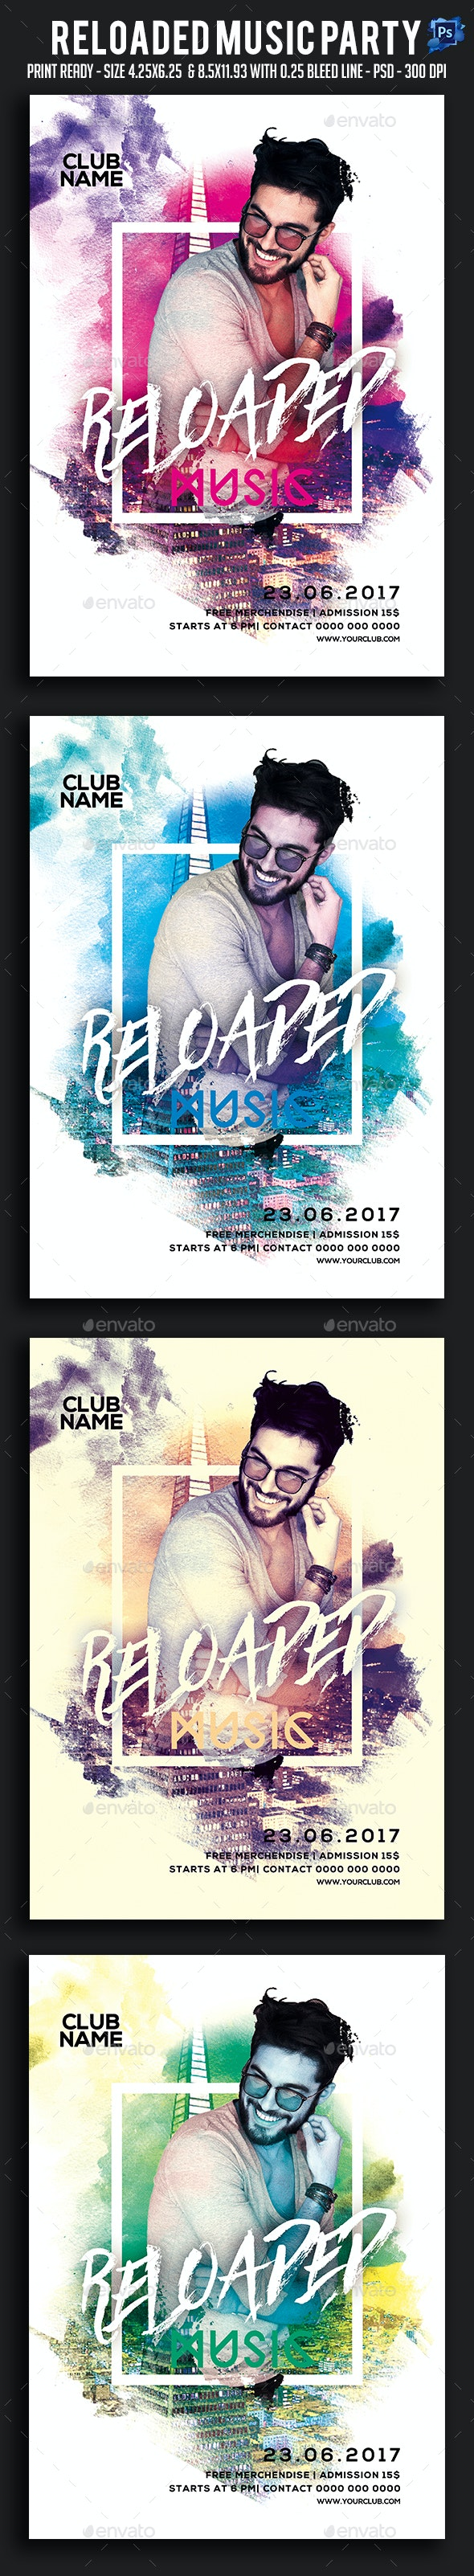 Reloaded Music Party Flyer - Clubs & Parties Events